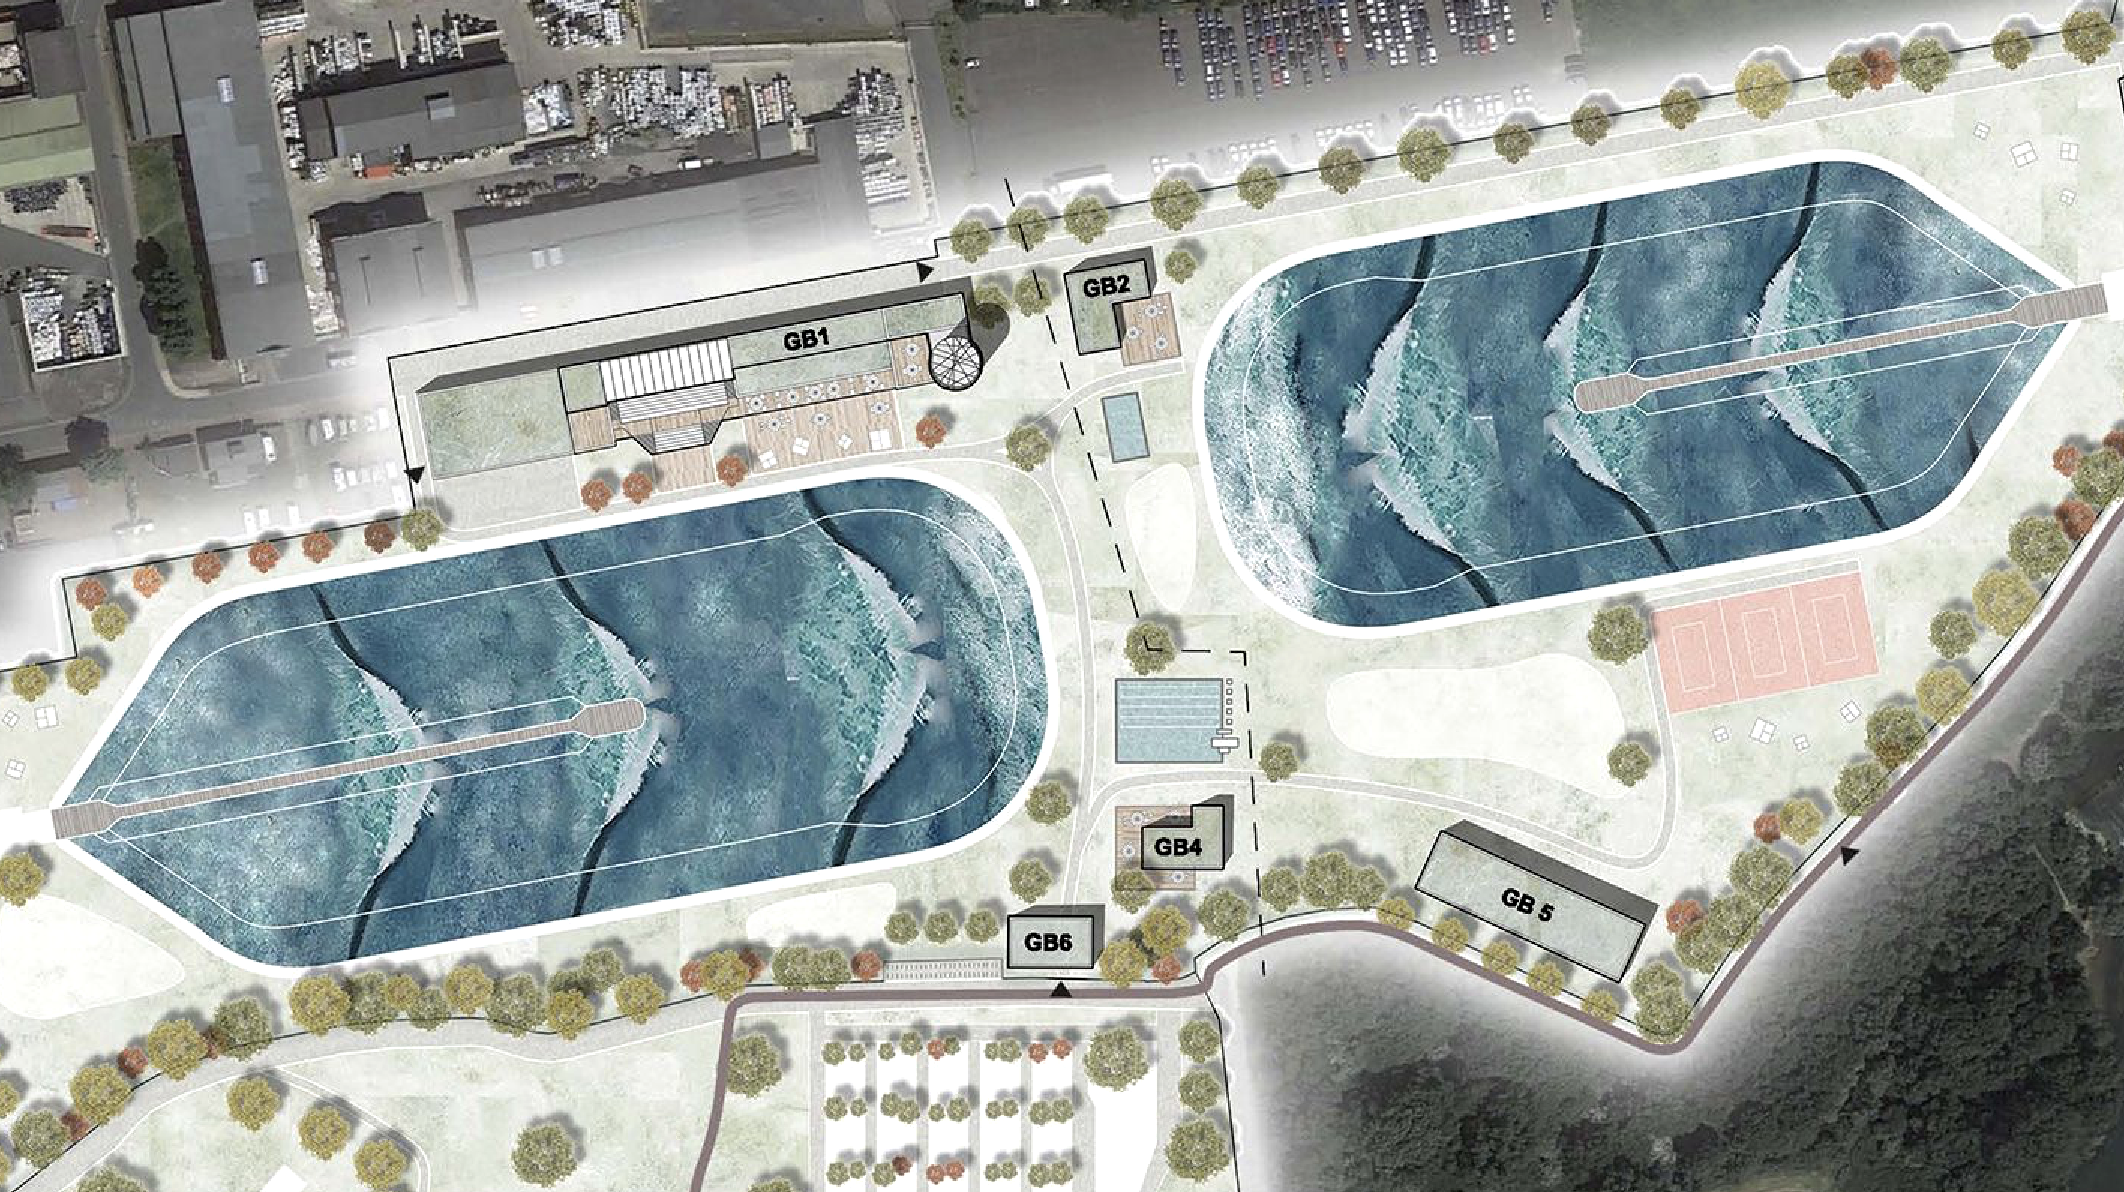 SurfWrld planned wave pool